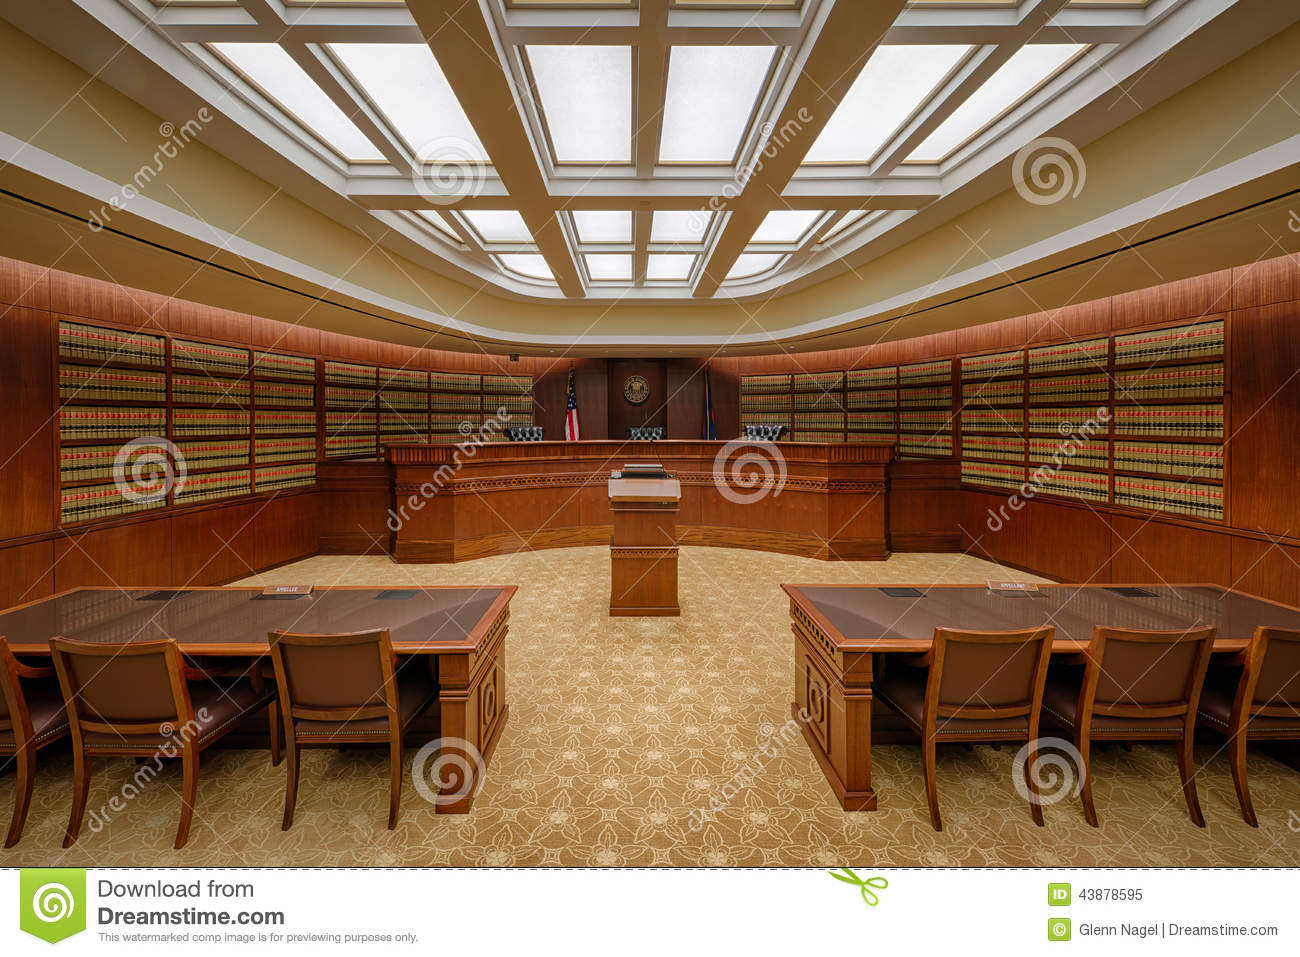 the library court of appeals courtroom in the ralph l carr colorado judicial center at 2 e 14th avenue in denver colorado on july 24 2014